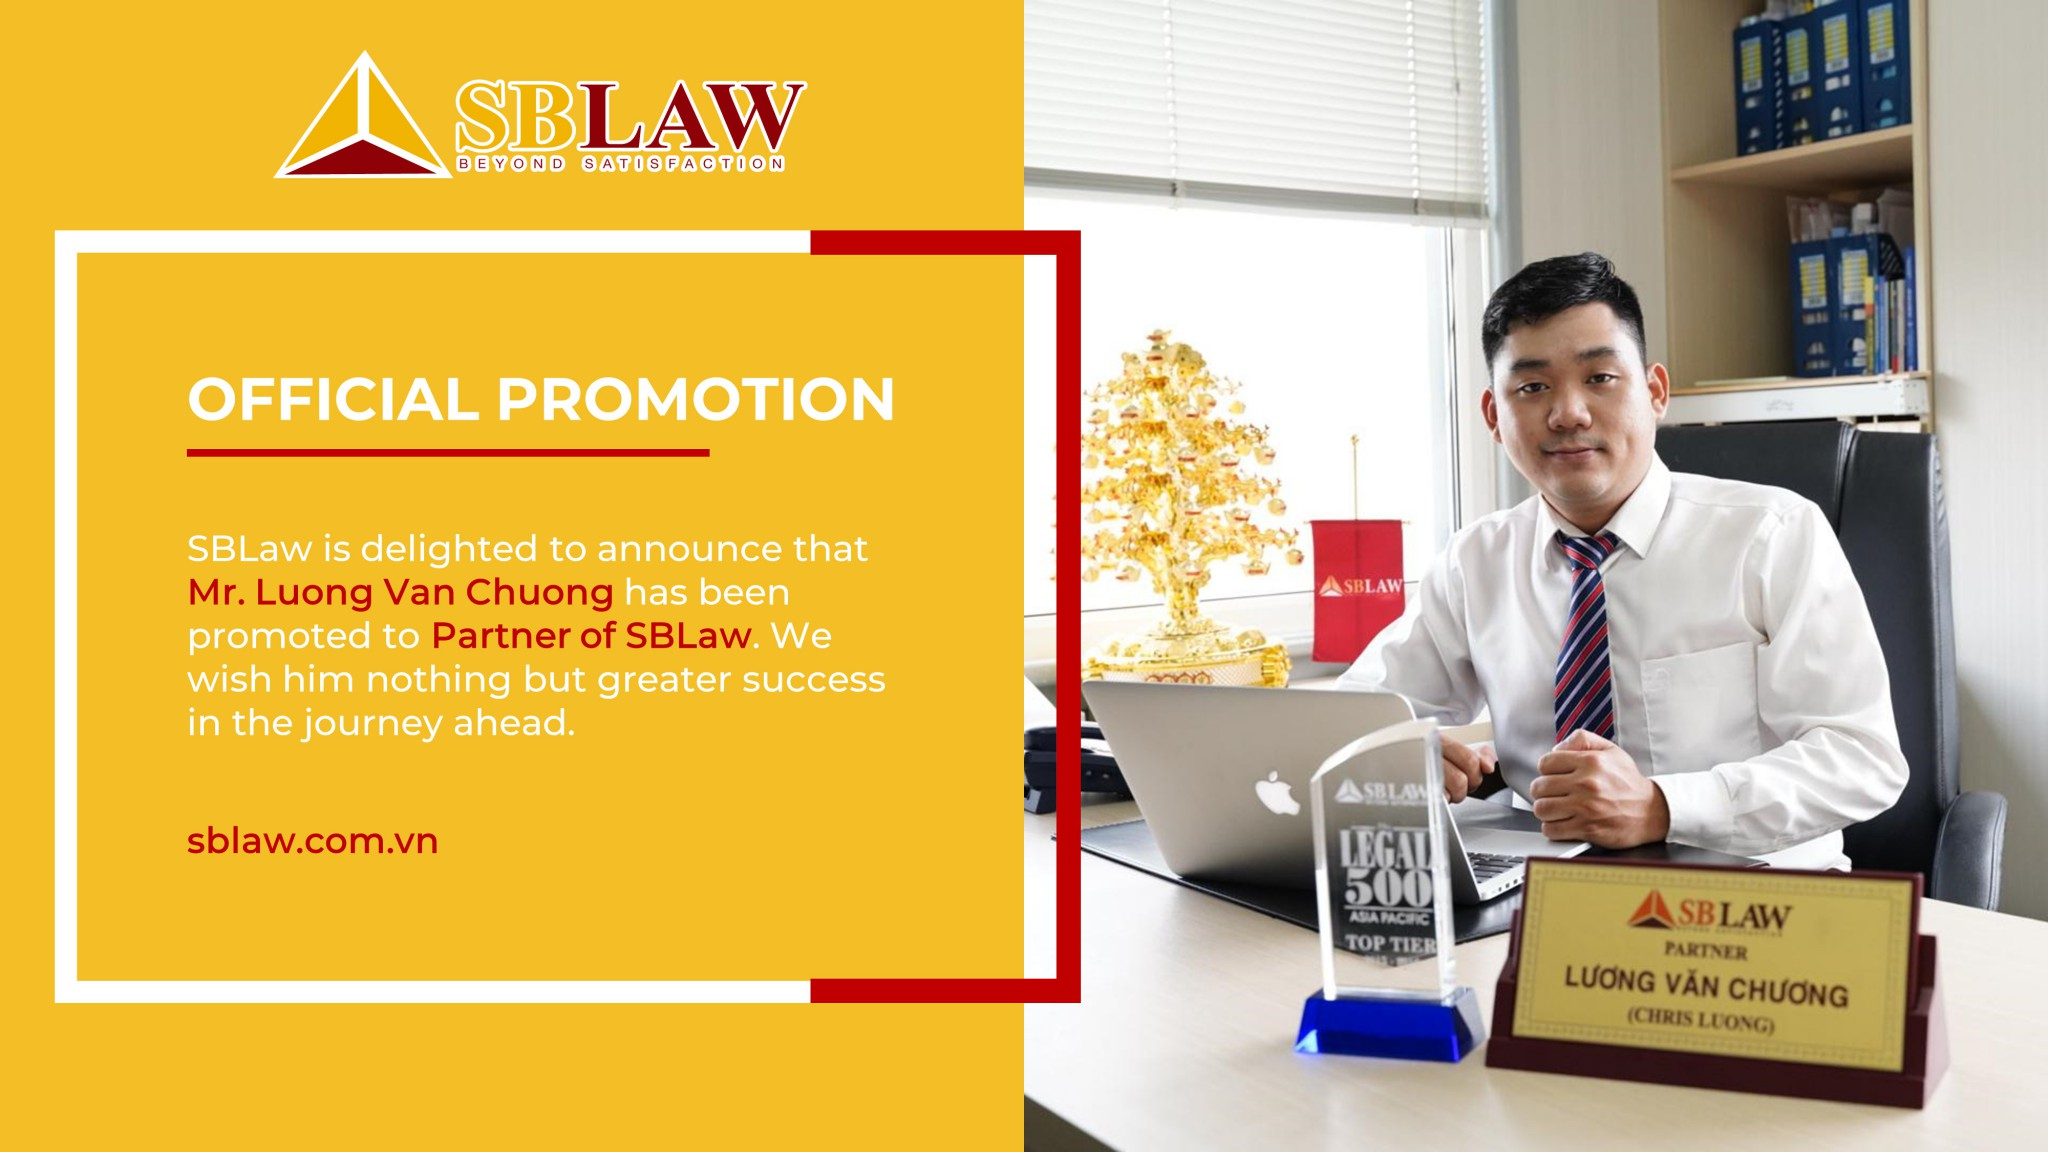 Lawyer Luong Van Chuong has been promoted to partner of SBLAW